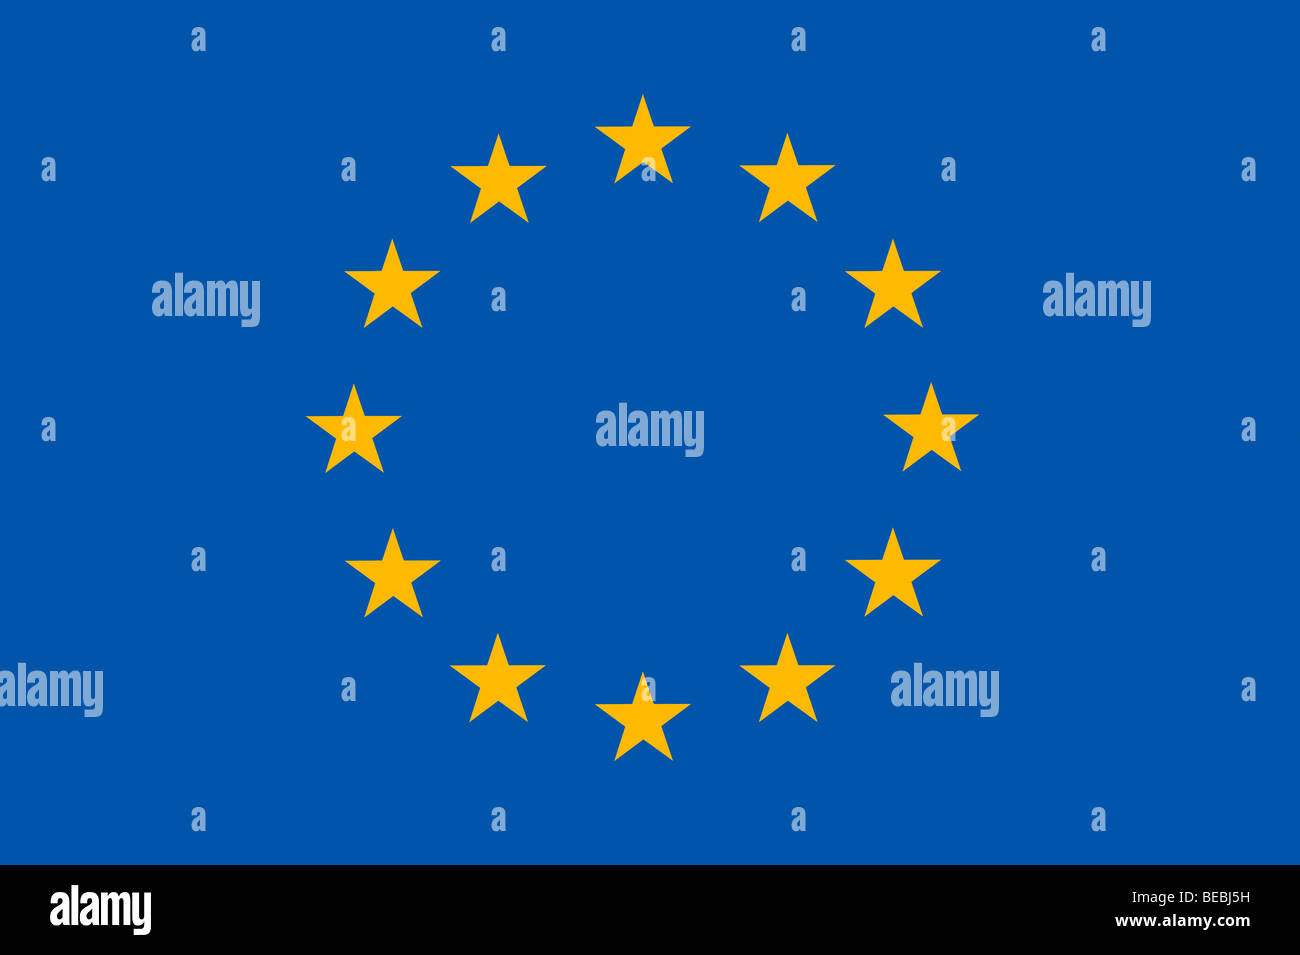 European union flag illustration - Stock Image